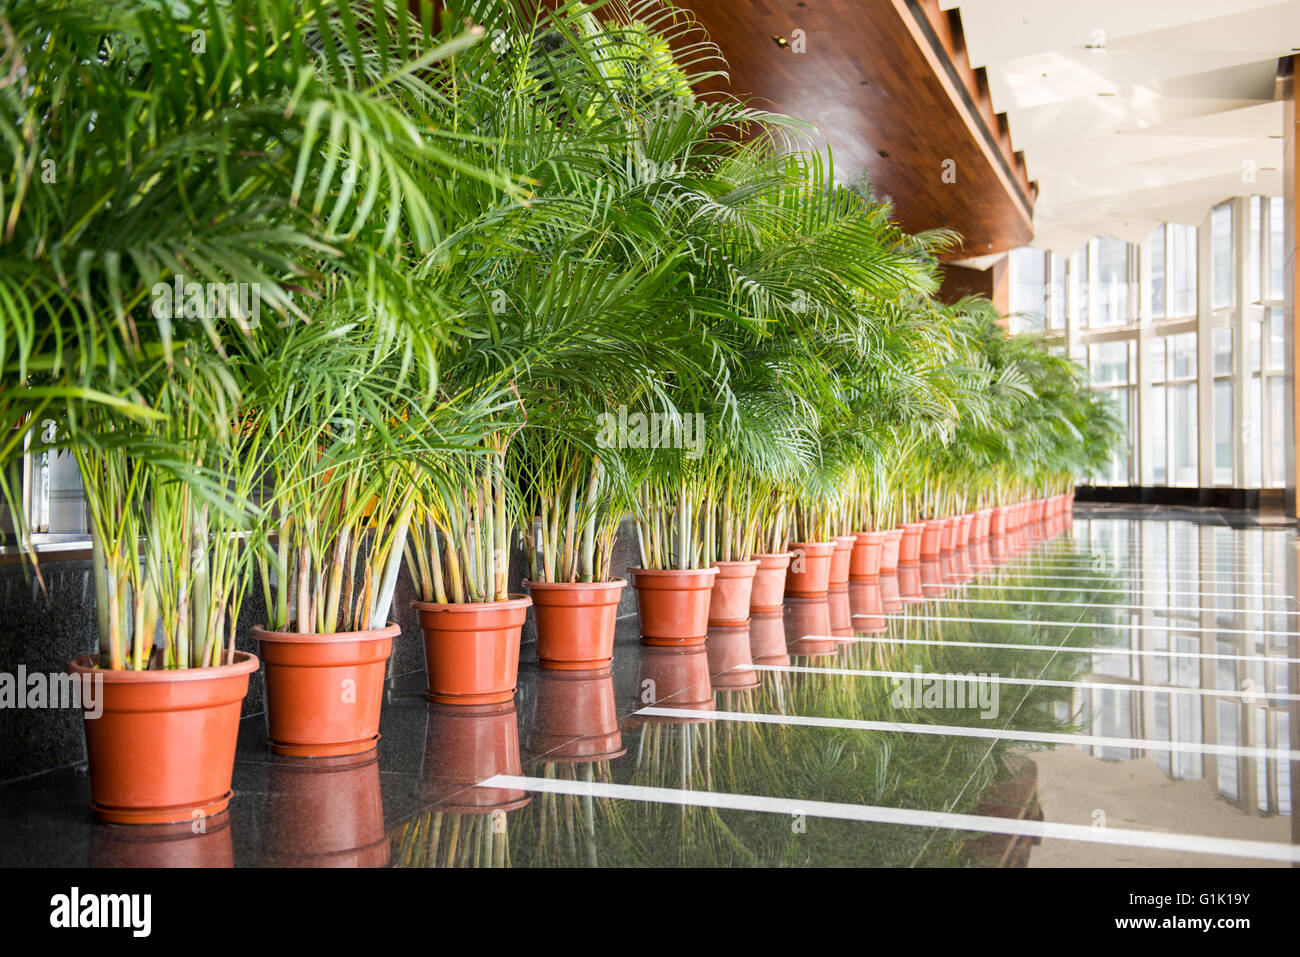 Amazing Long Row Of Green Tall Plants In Red Pots Inside A Building Lobby